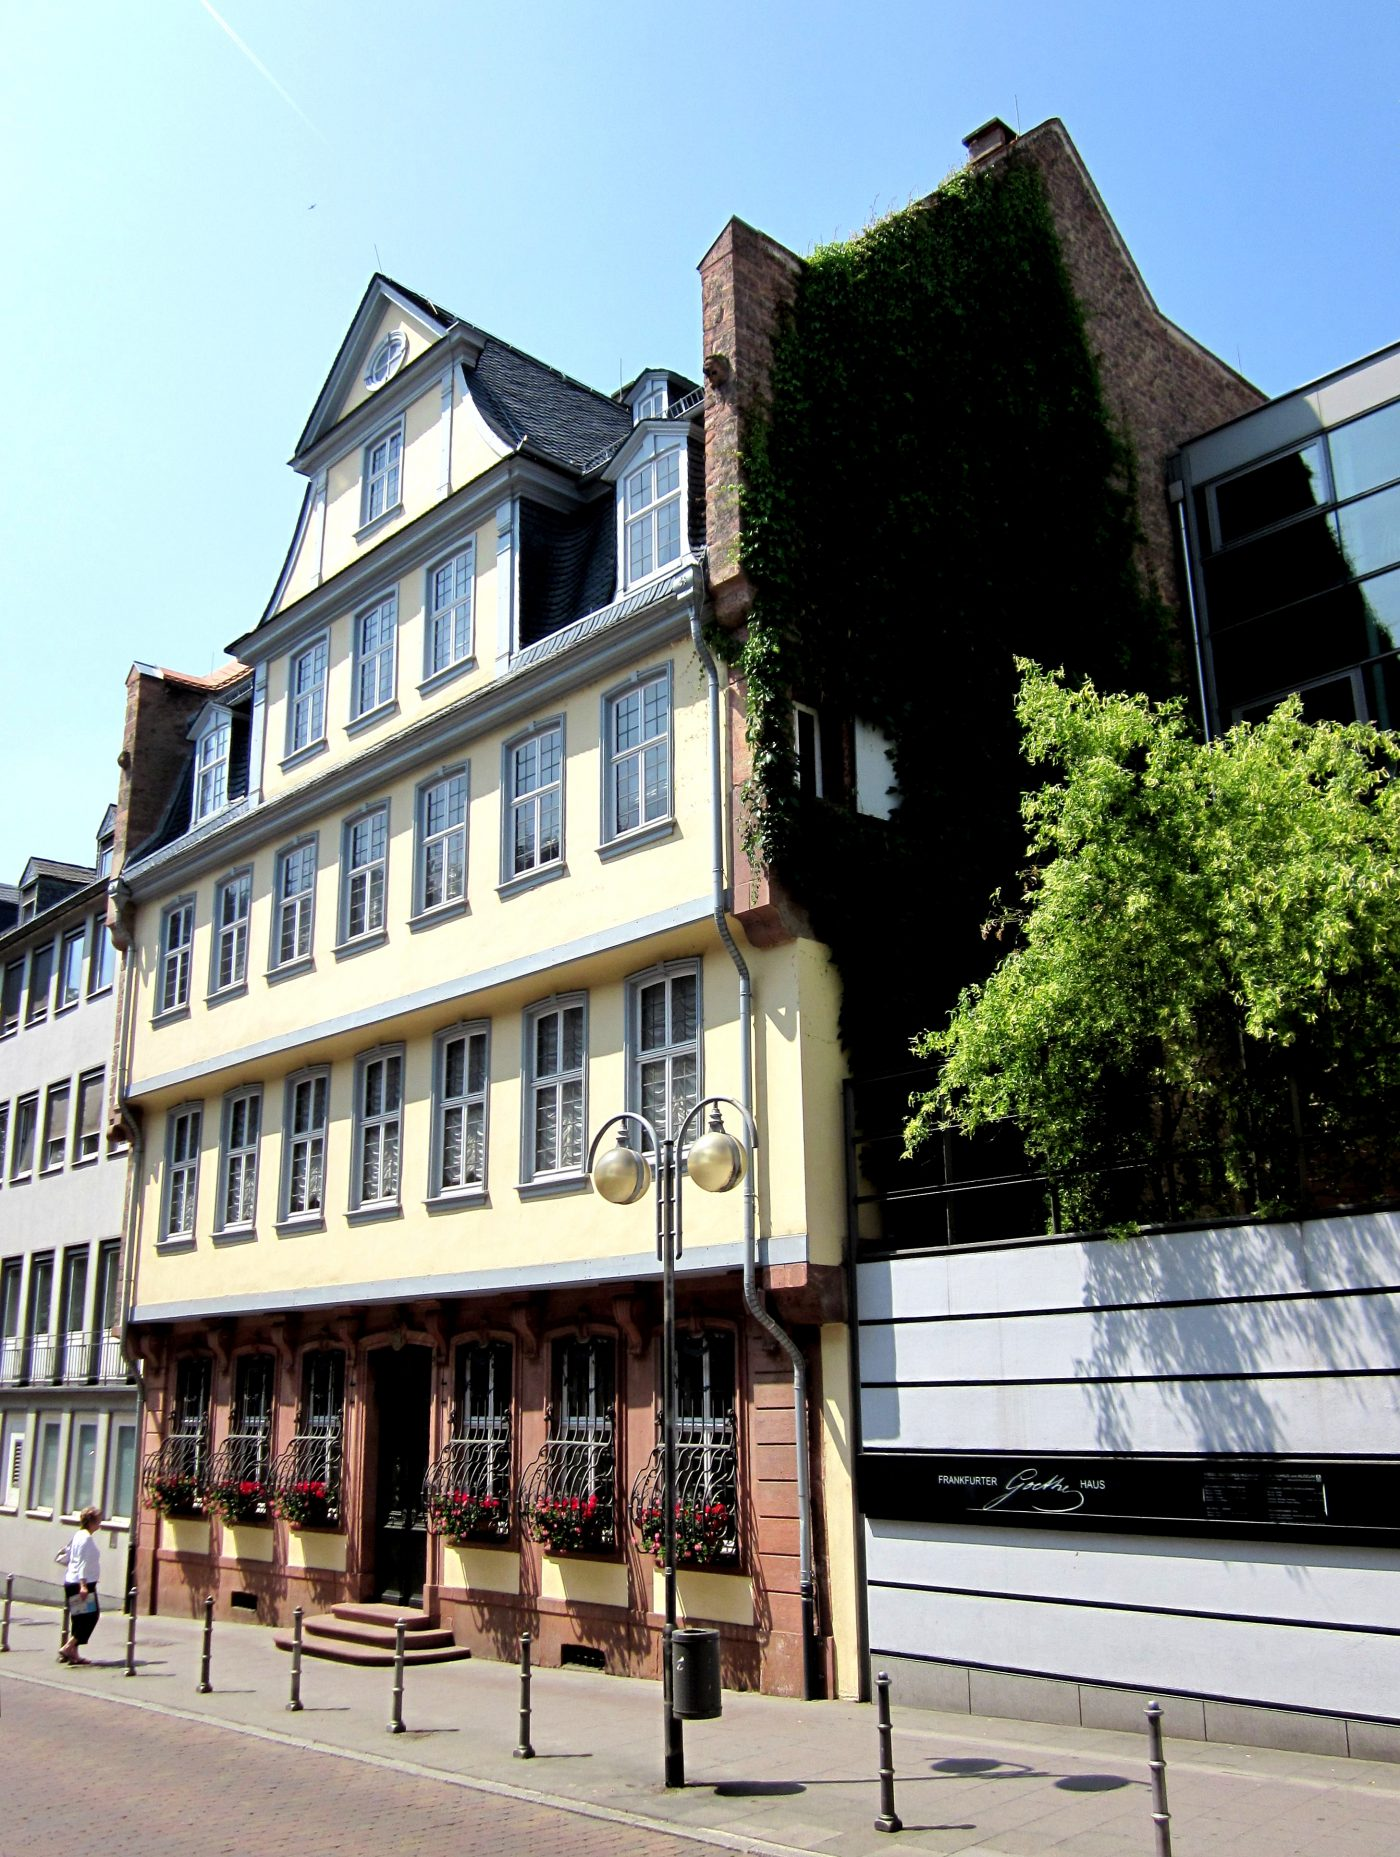 Frankfurt Travel Guide What To Visit During Light + Building 2020_4 frankfurt travel guide Frankfurt Travel Guide: What To Visit During Light + Building 2020 Frankfurt Travel Guide What To Visit During Light Building 2020 4